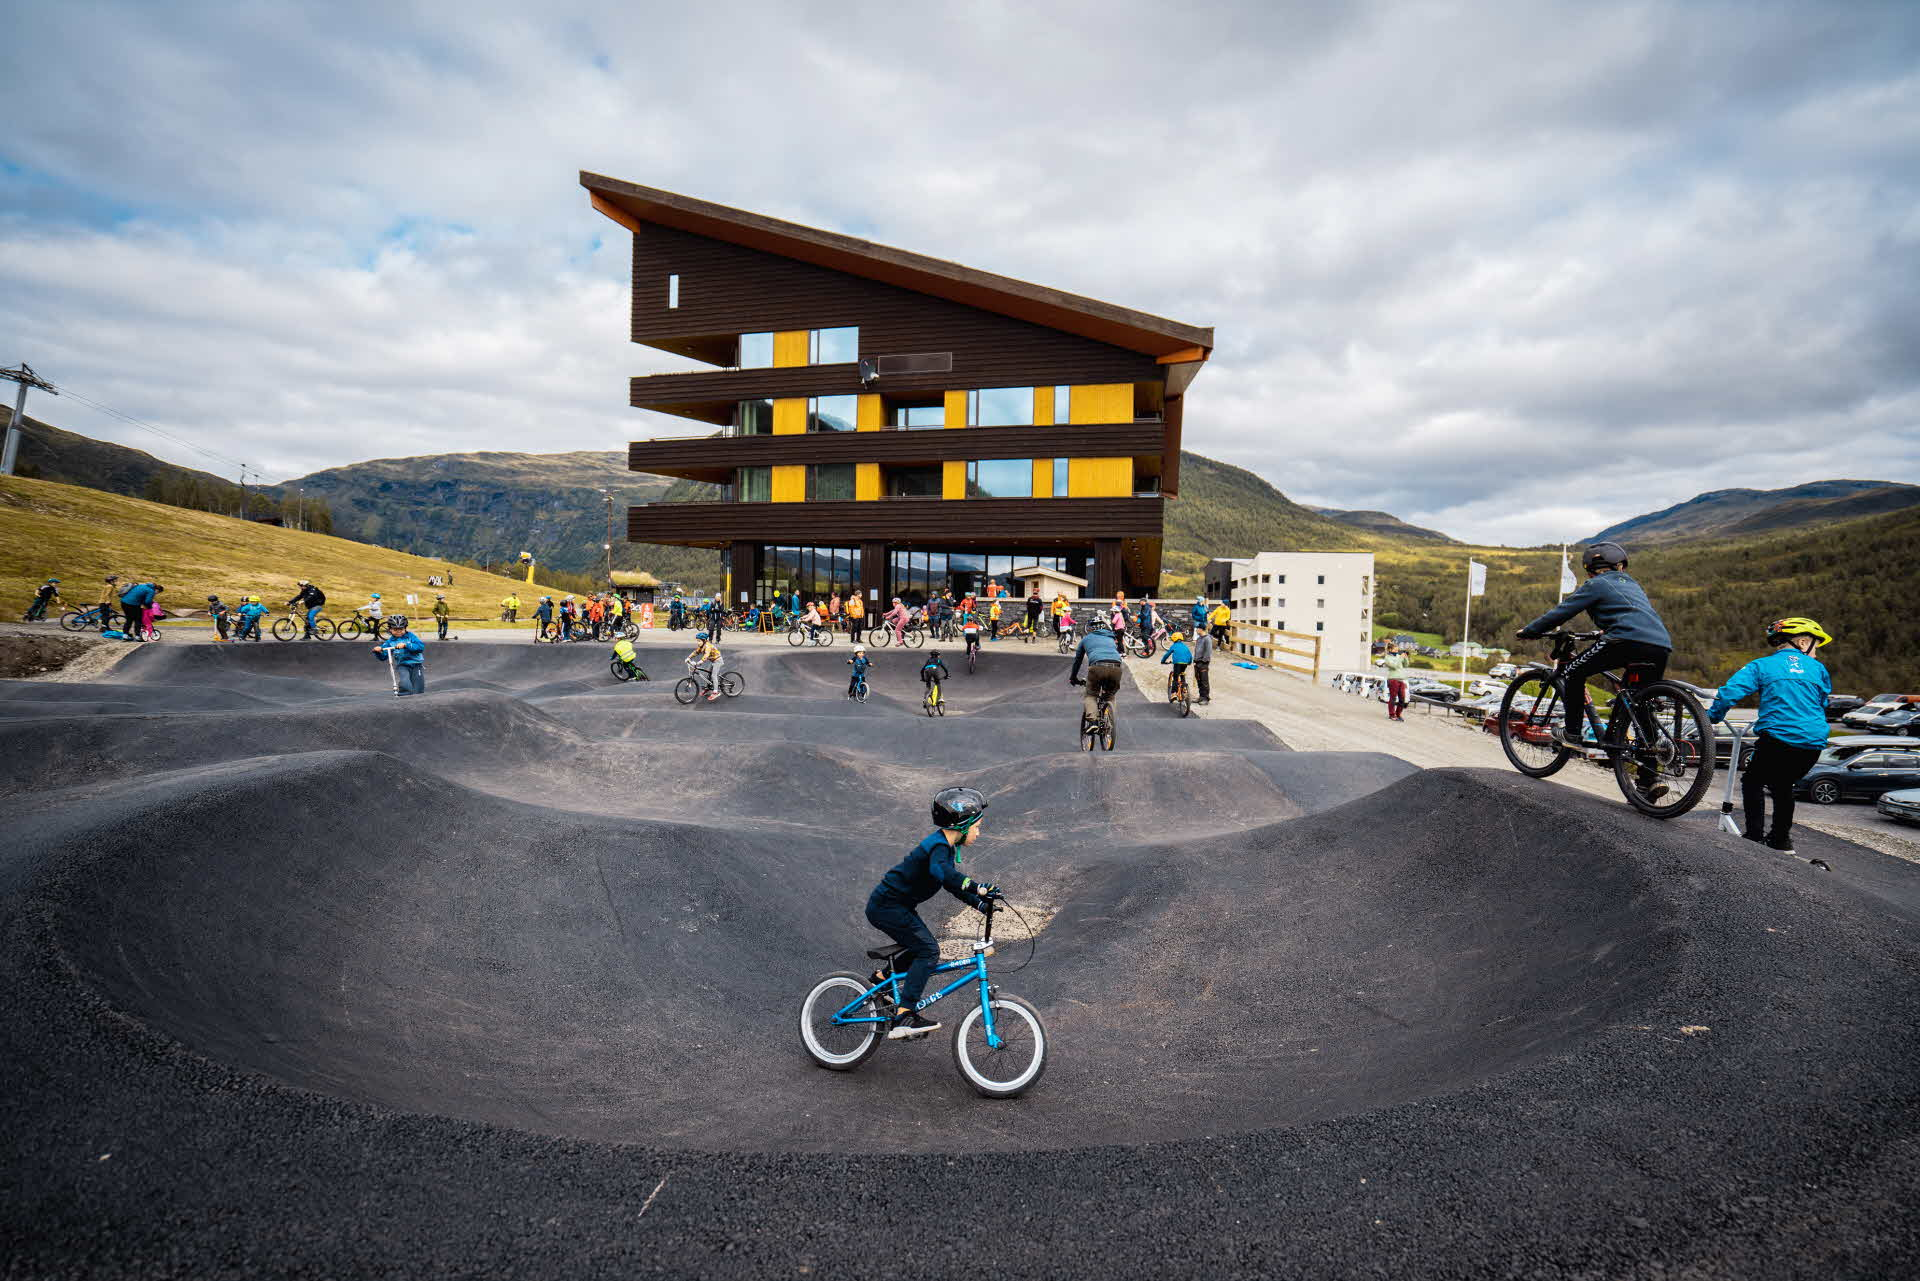 Children and adults cycle on the pumptrack outside the Myrkdalen Hotel